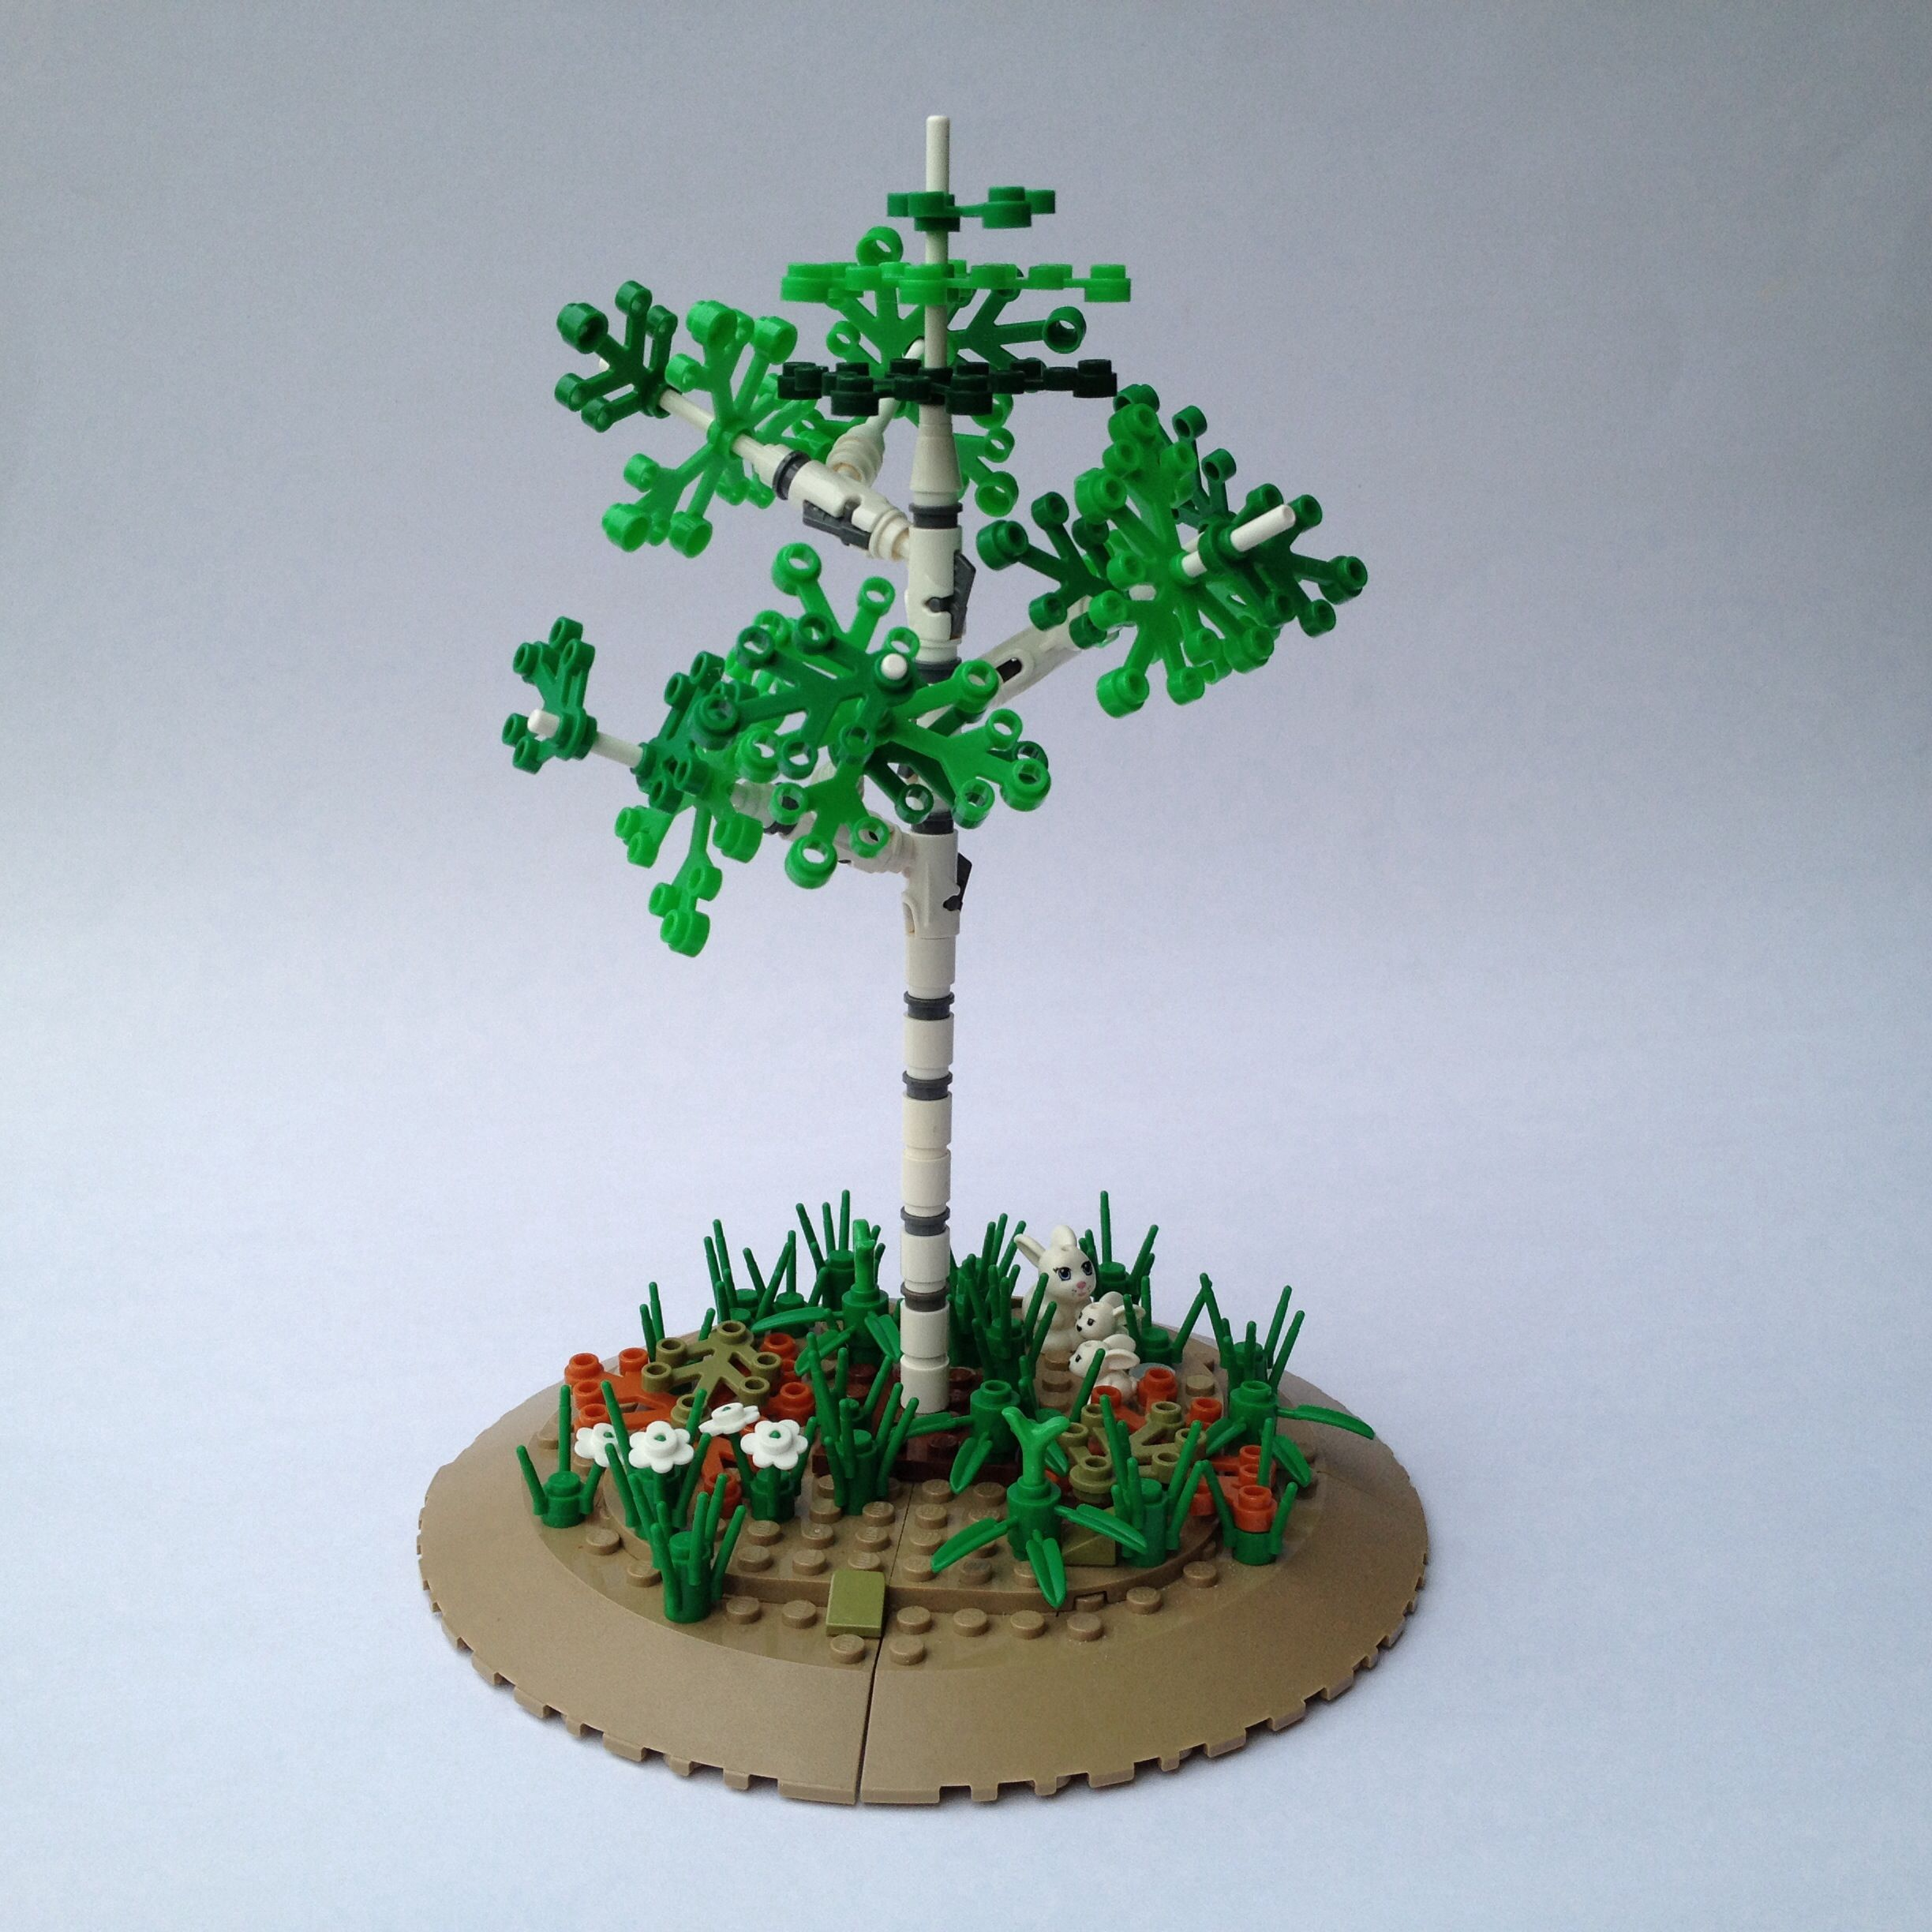 Lego Birch Tree Wow They Used Stud Shooters To Het Those Angles